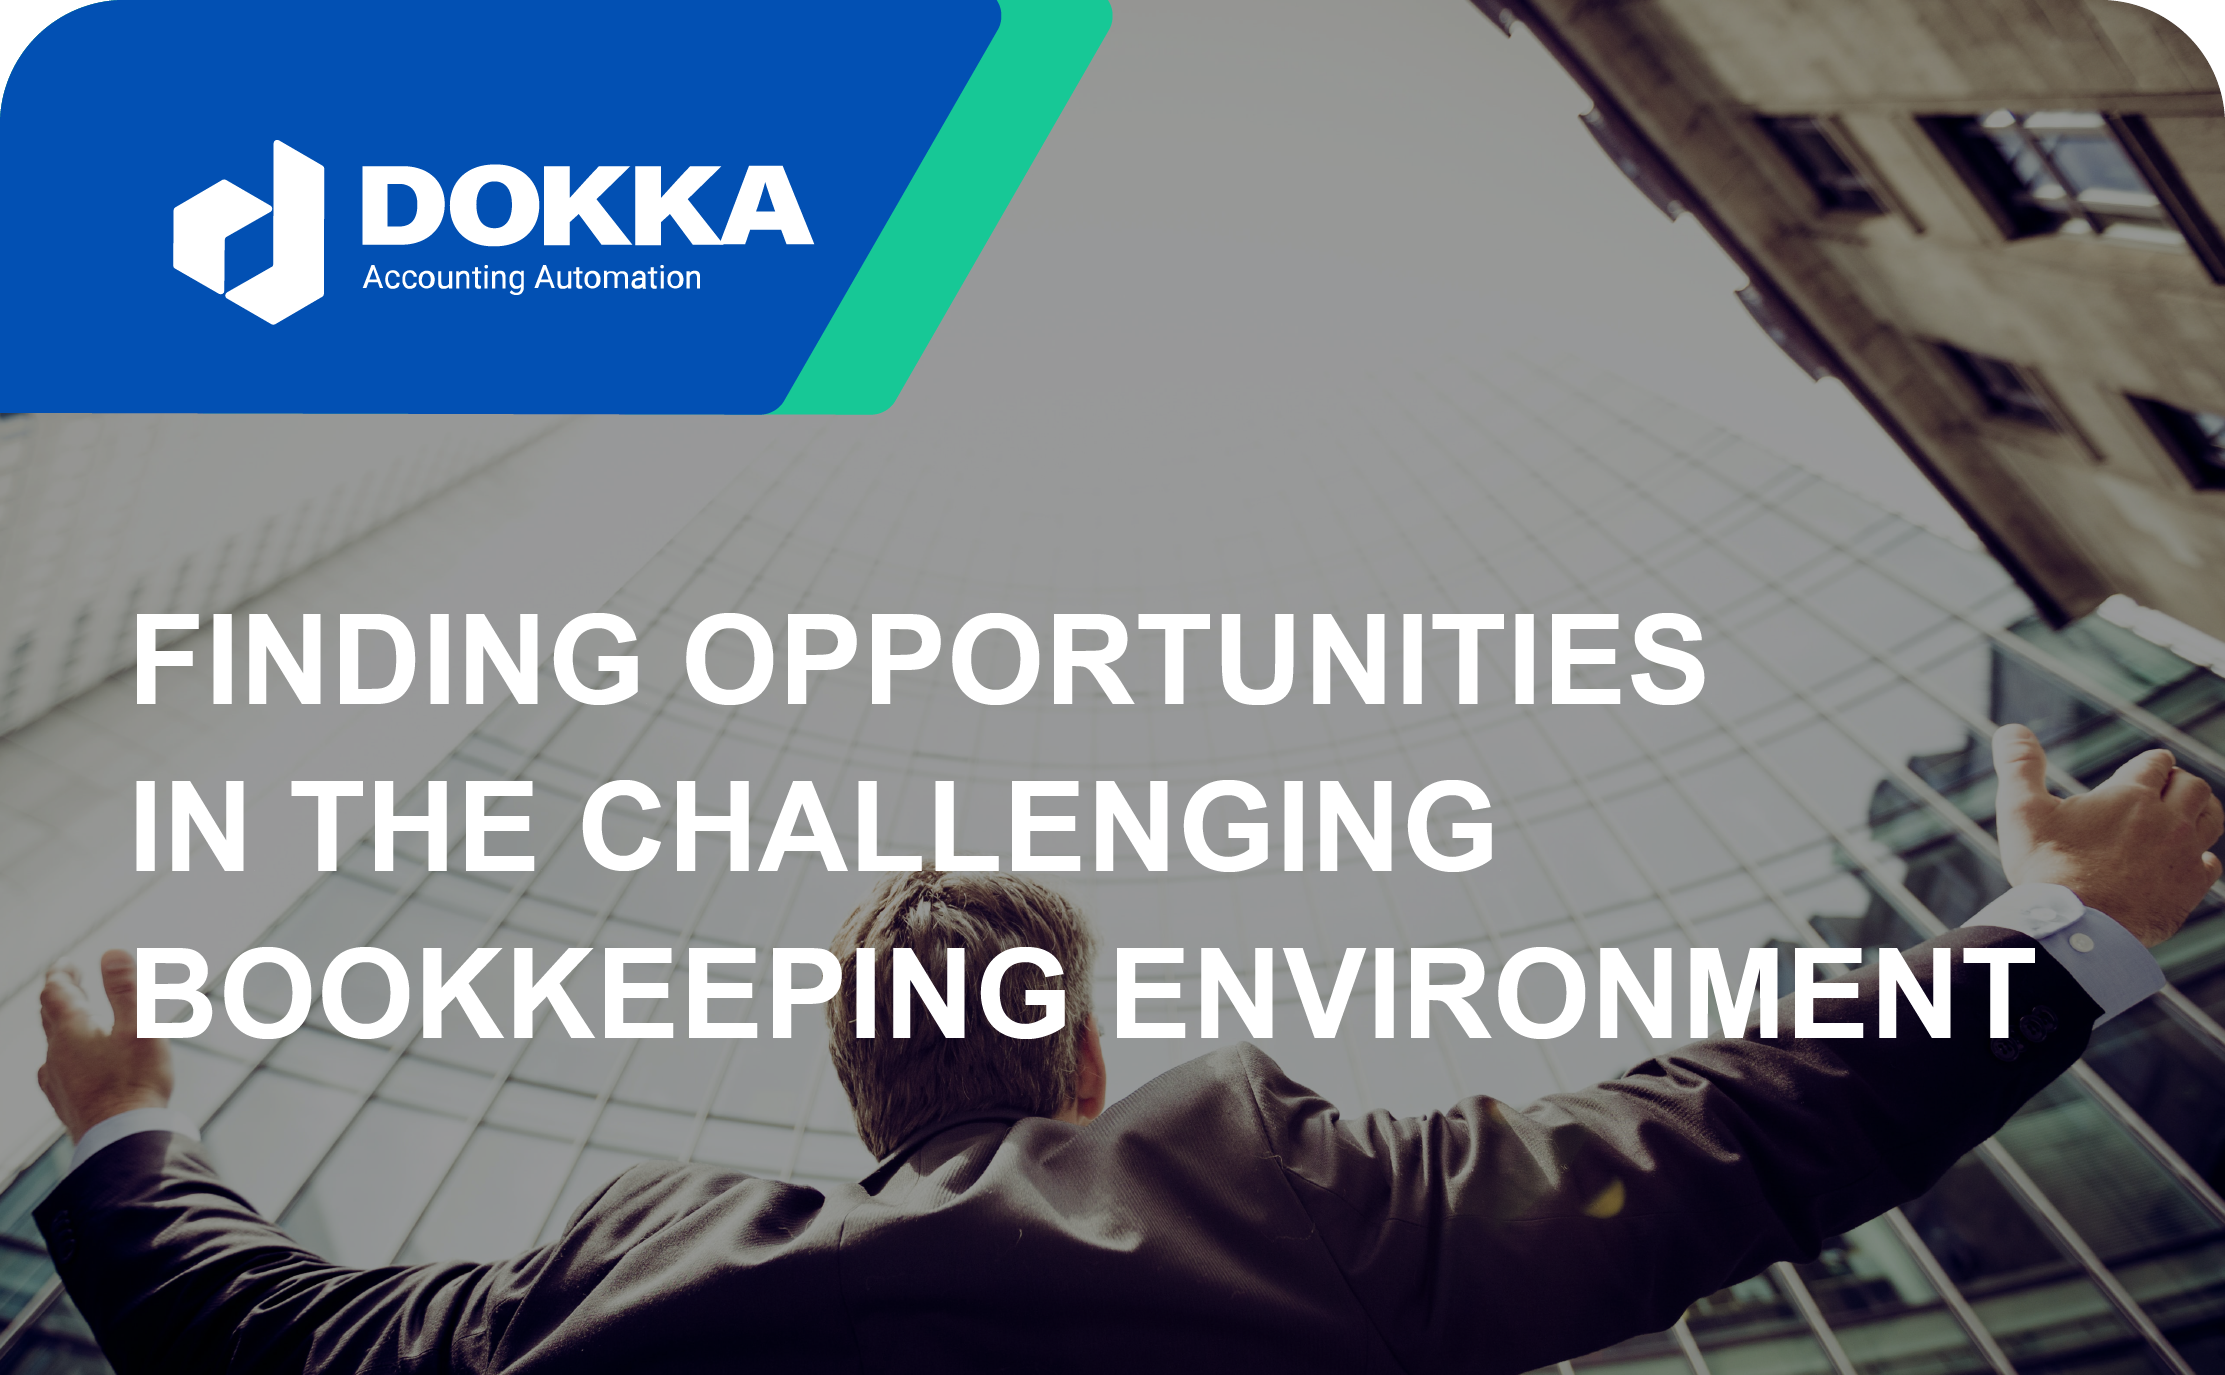 Finding Opportunities in the Challenging Bookkeeping Environment